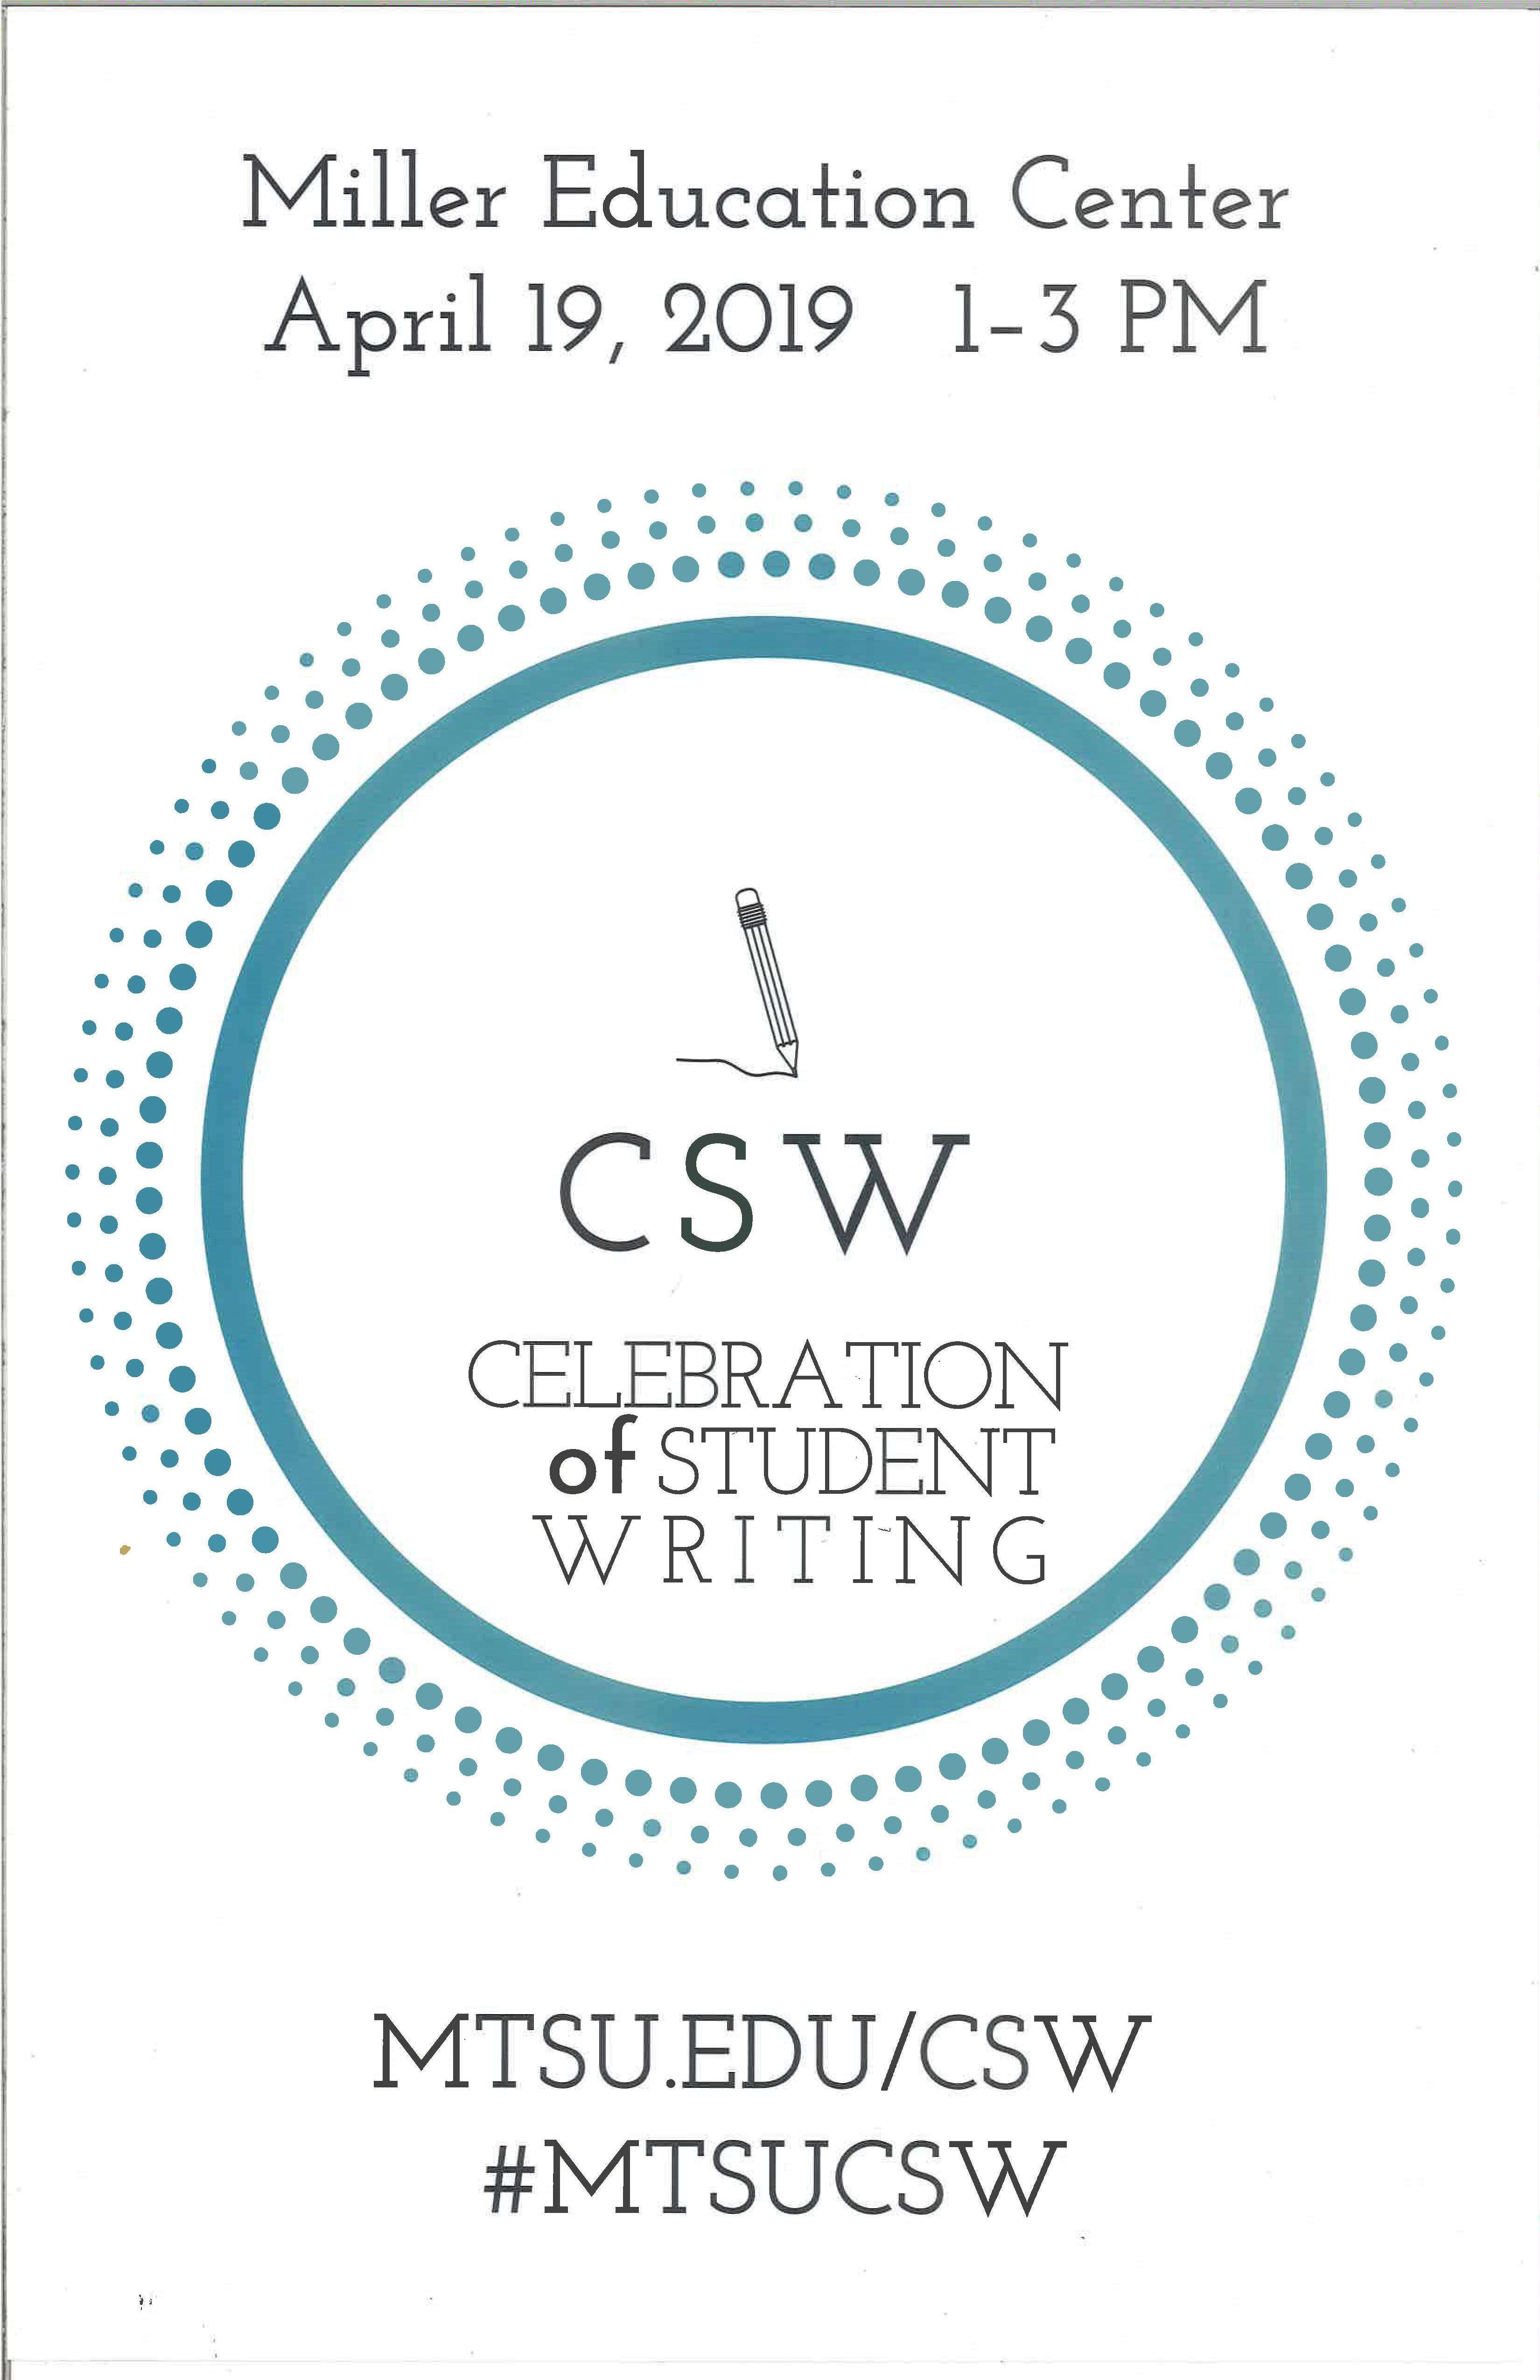 Flyer for the Celebration of Student Writing